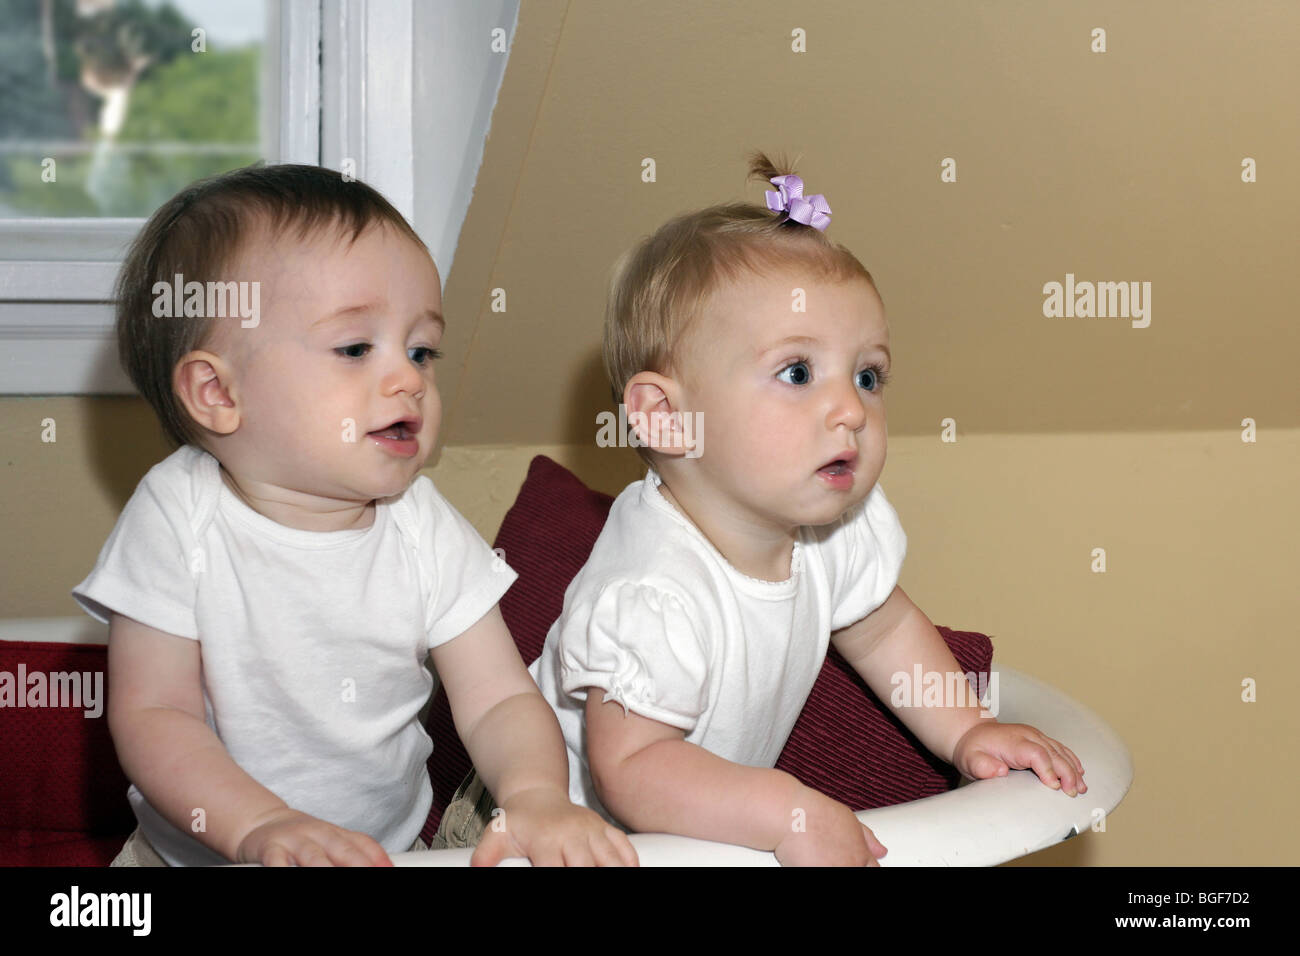 Two babies together in a bathtub Stock Photo, Royalty Free Image ...